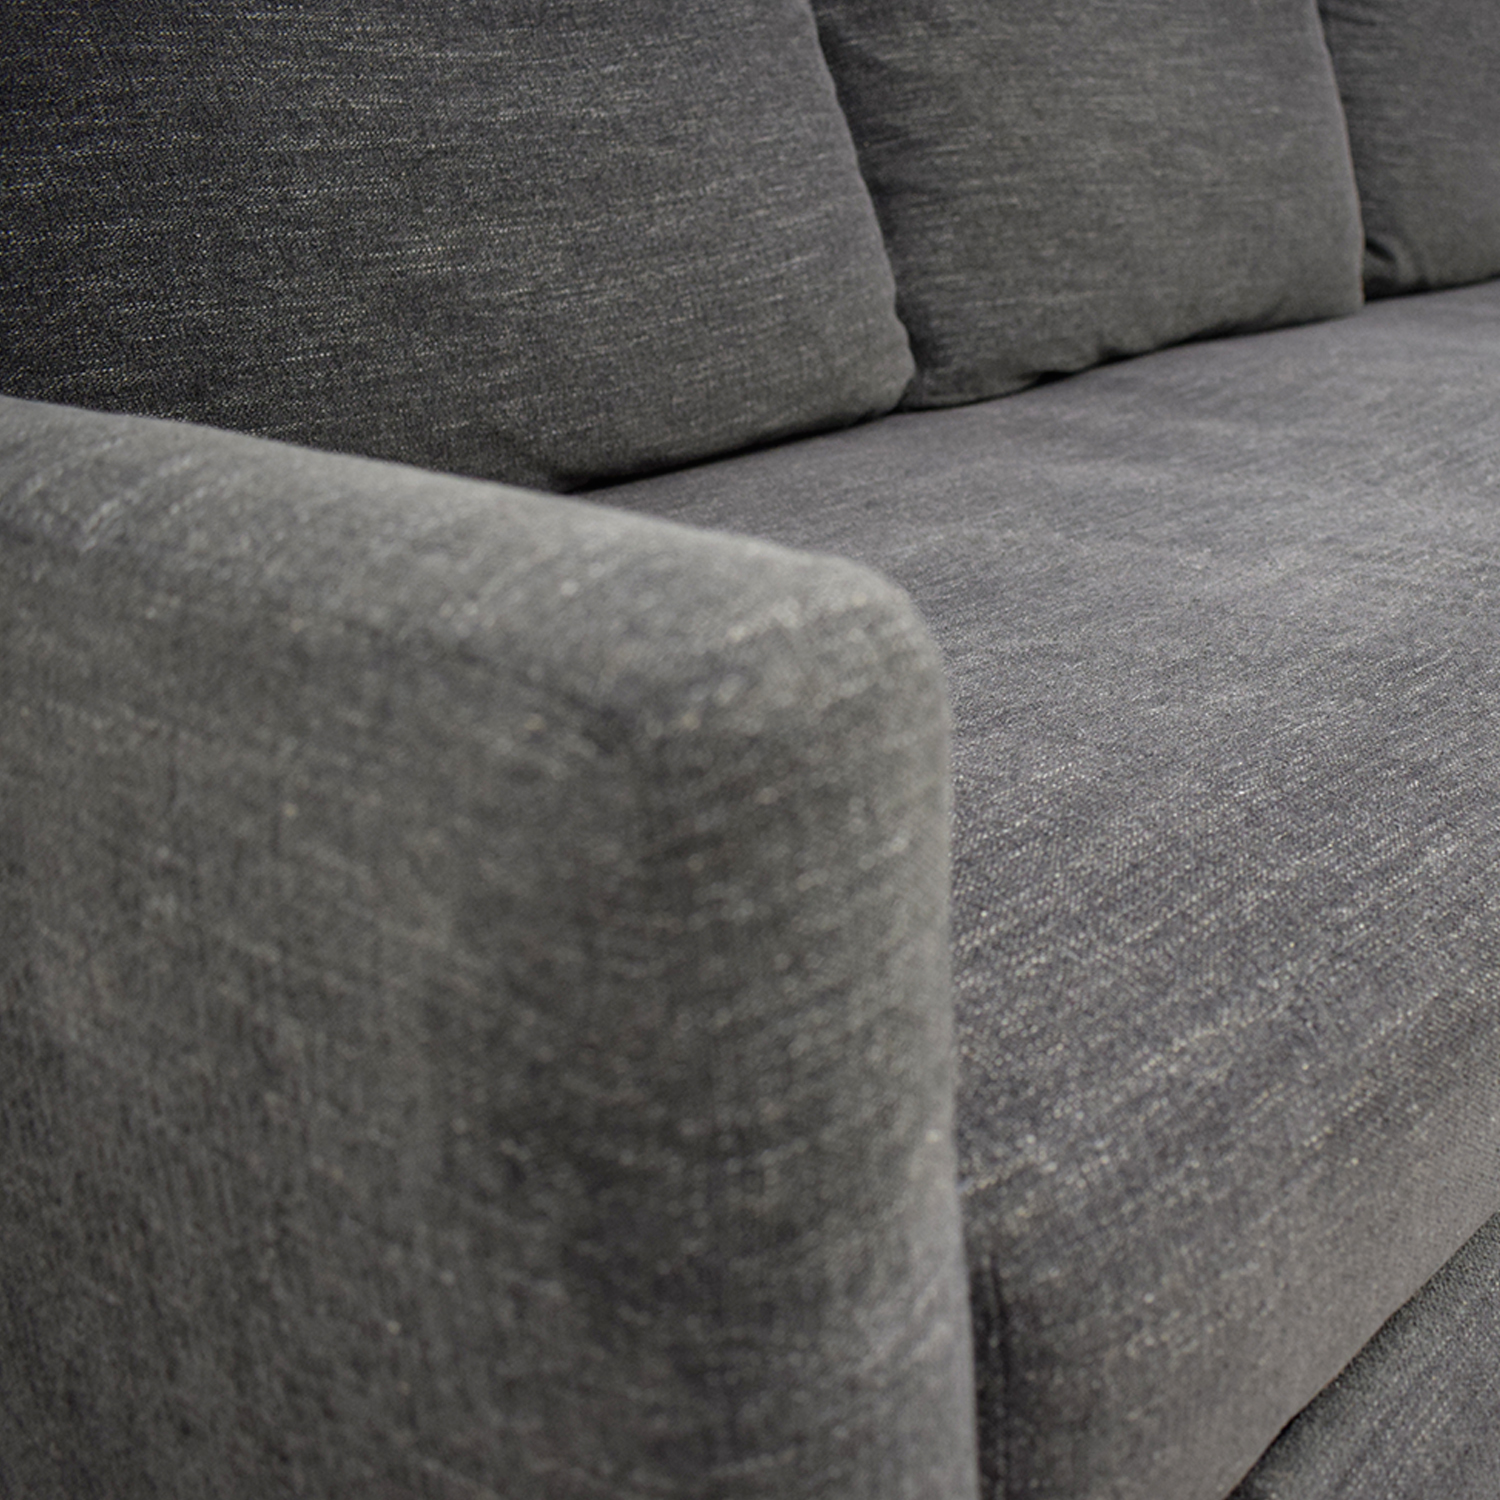 Crate & Barrel Crate & Barrel Reston Grey Queen Trundle Sleeper Sofabed dimensions